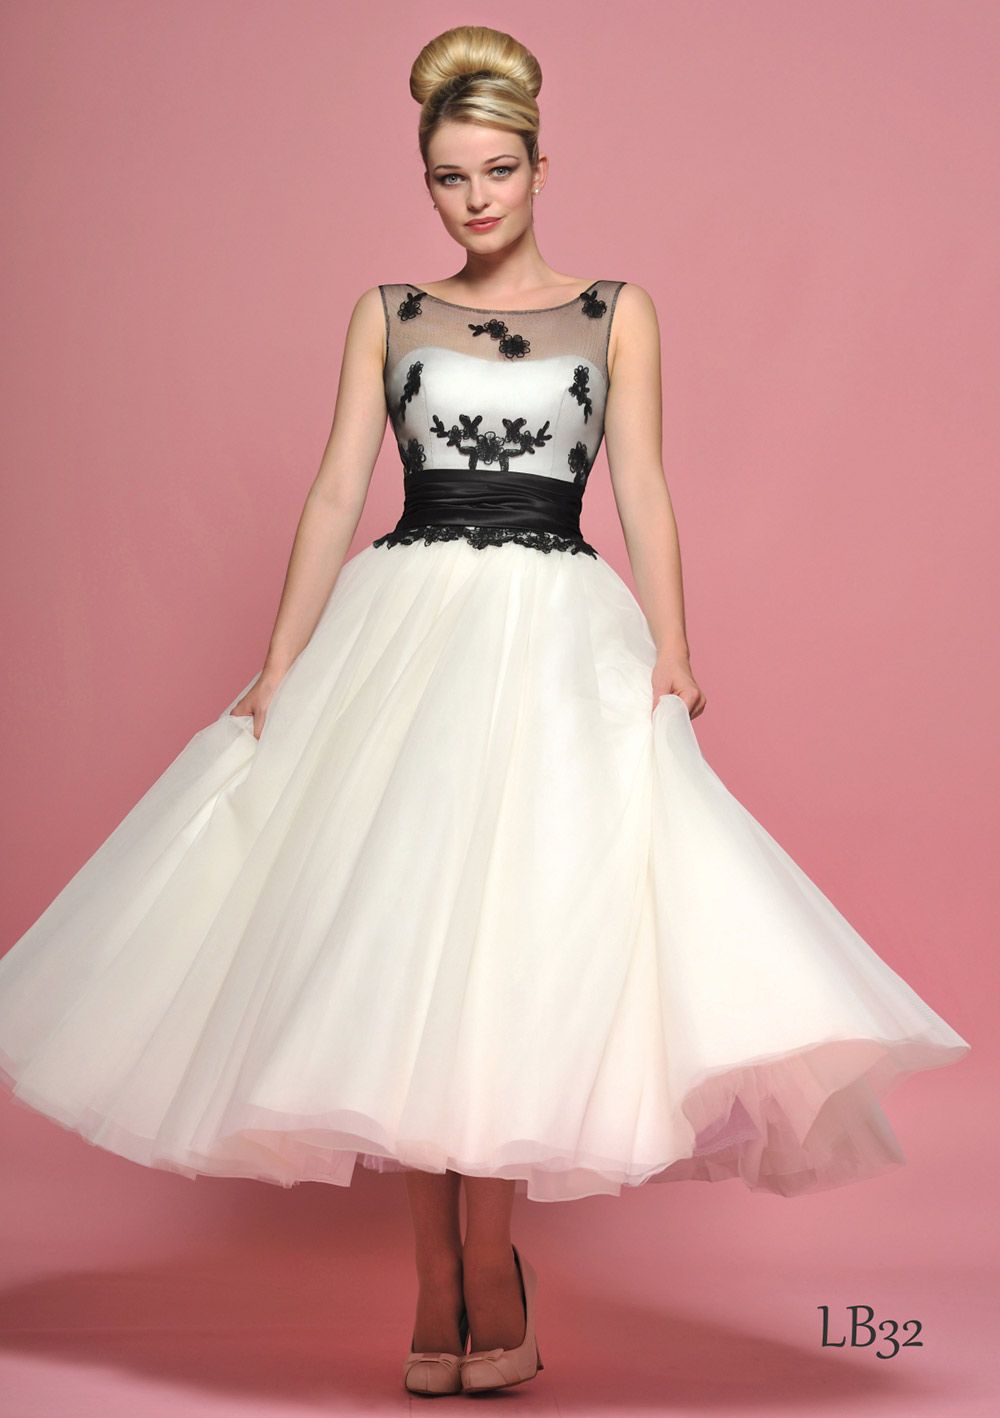 Ideas 50s inspired wedding dresses the unique appeal of 50s style ideas 50s inspired wedding dresses the unique appeal of 50s style wedding dresses ideas ideas ombrellifo Image collections